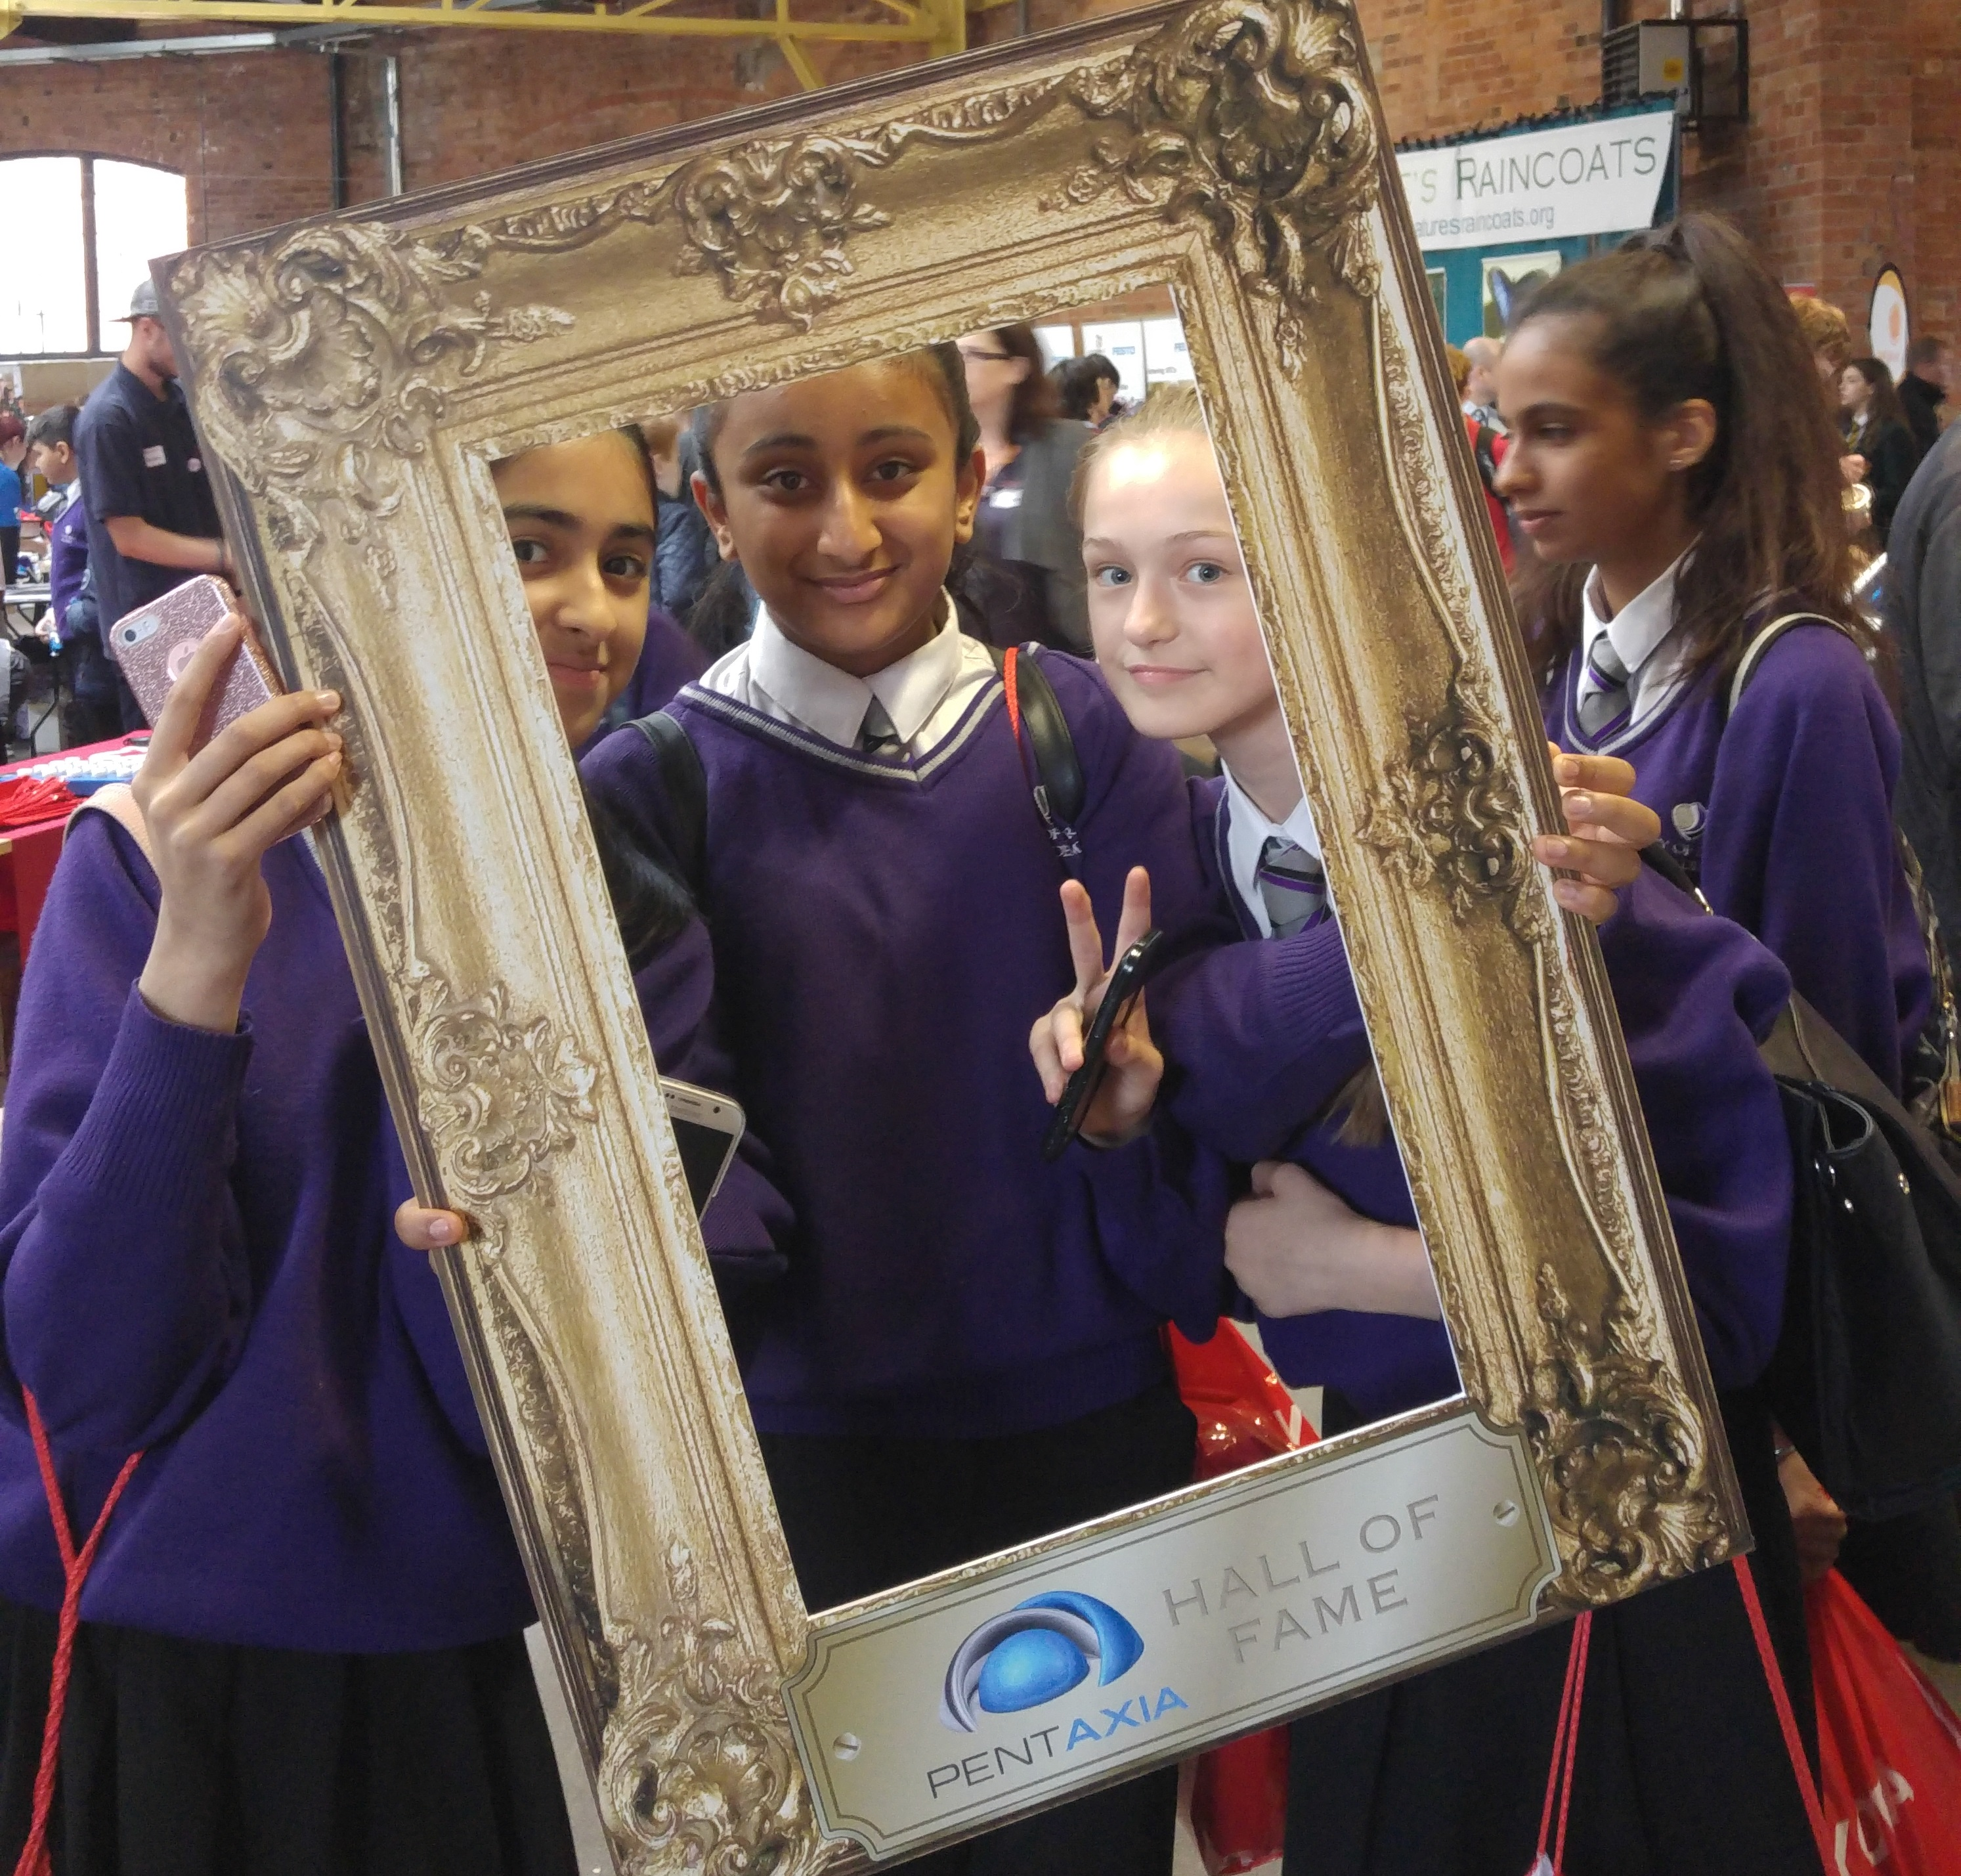 Students see their future 'selfie' with Pentaxia at the East Midlands Big Bang Fair